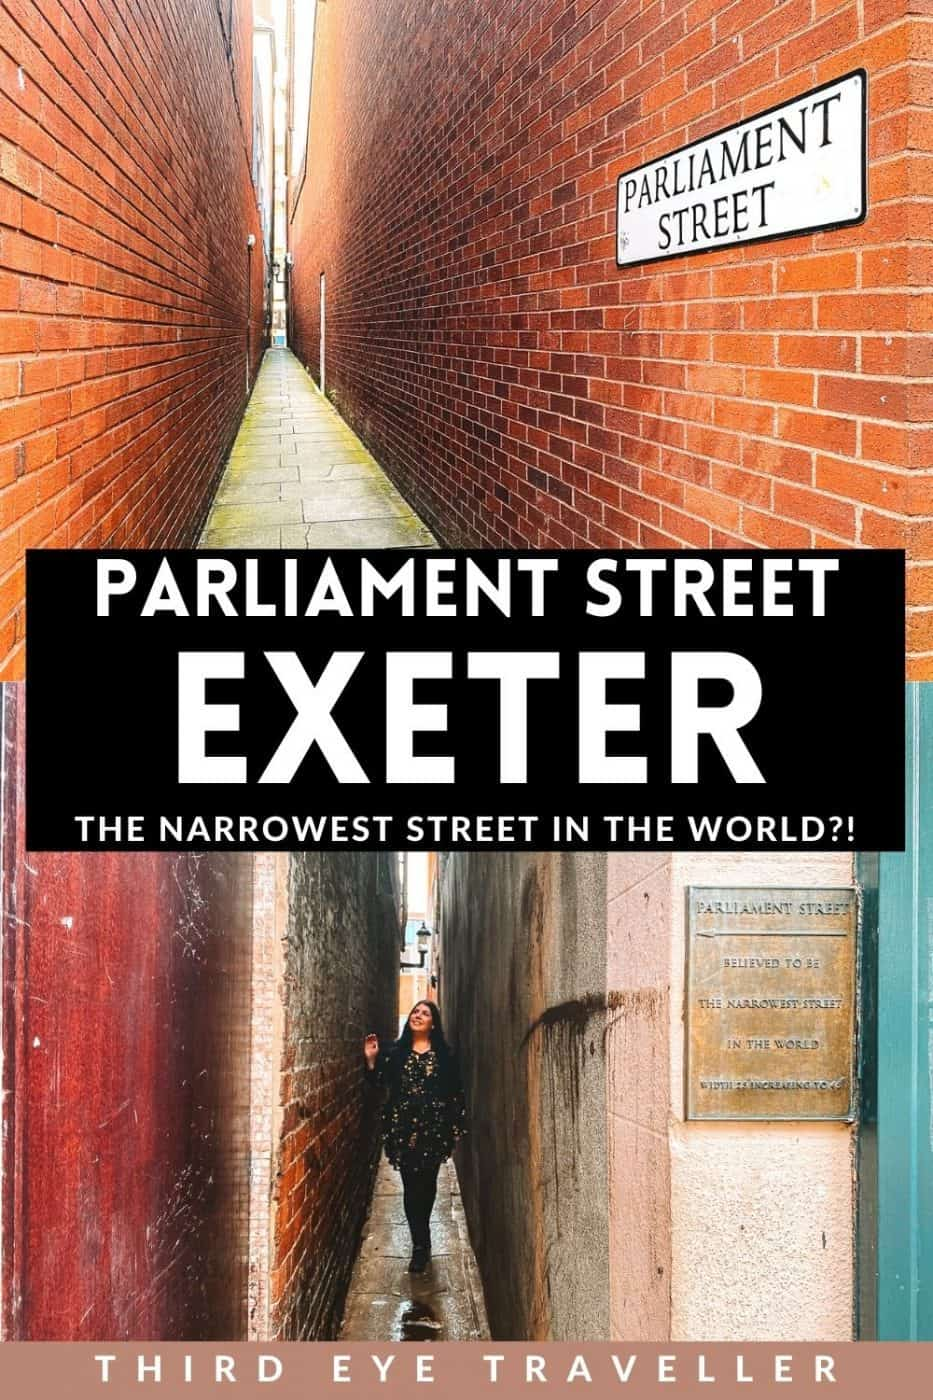 Parliament Street Exeter Narrowest Street in the world